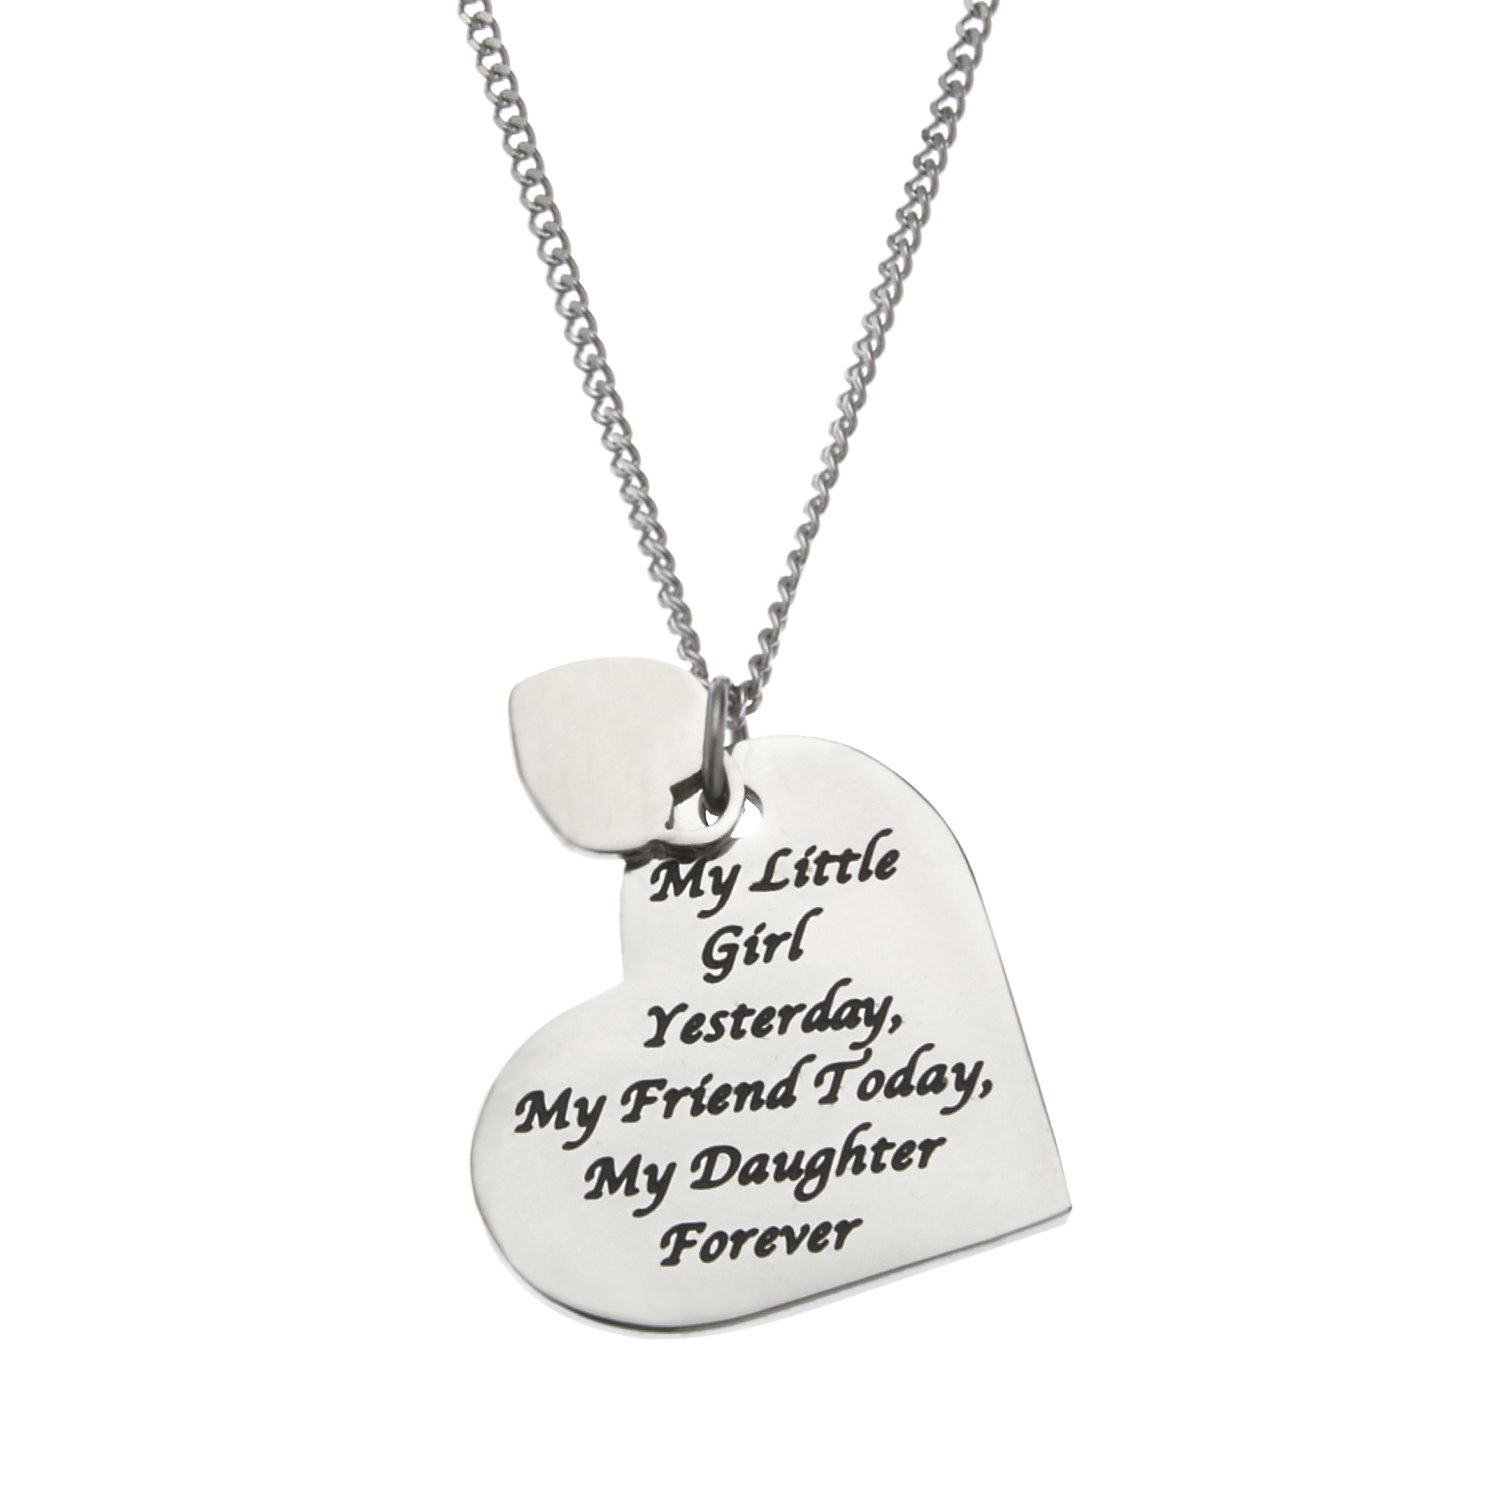 """""""My Little Girl Yesterday, My Friend Today, My Daughter Forever"""" Daughter's Necklace, Daughter Gifts"""